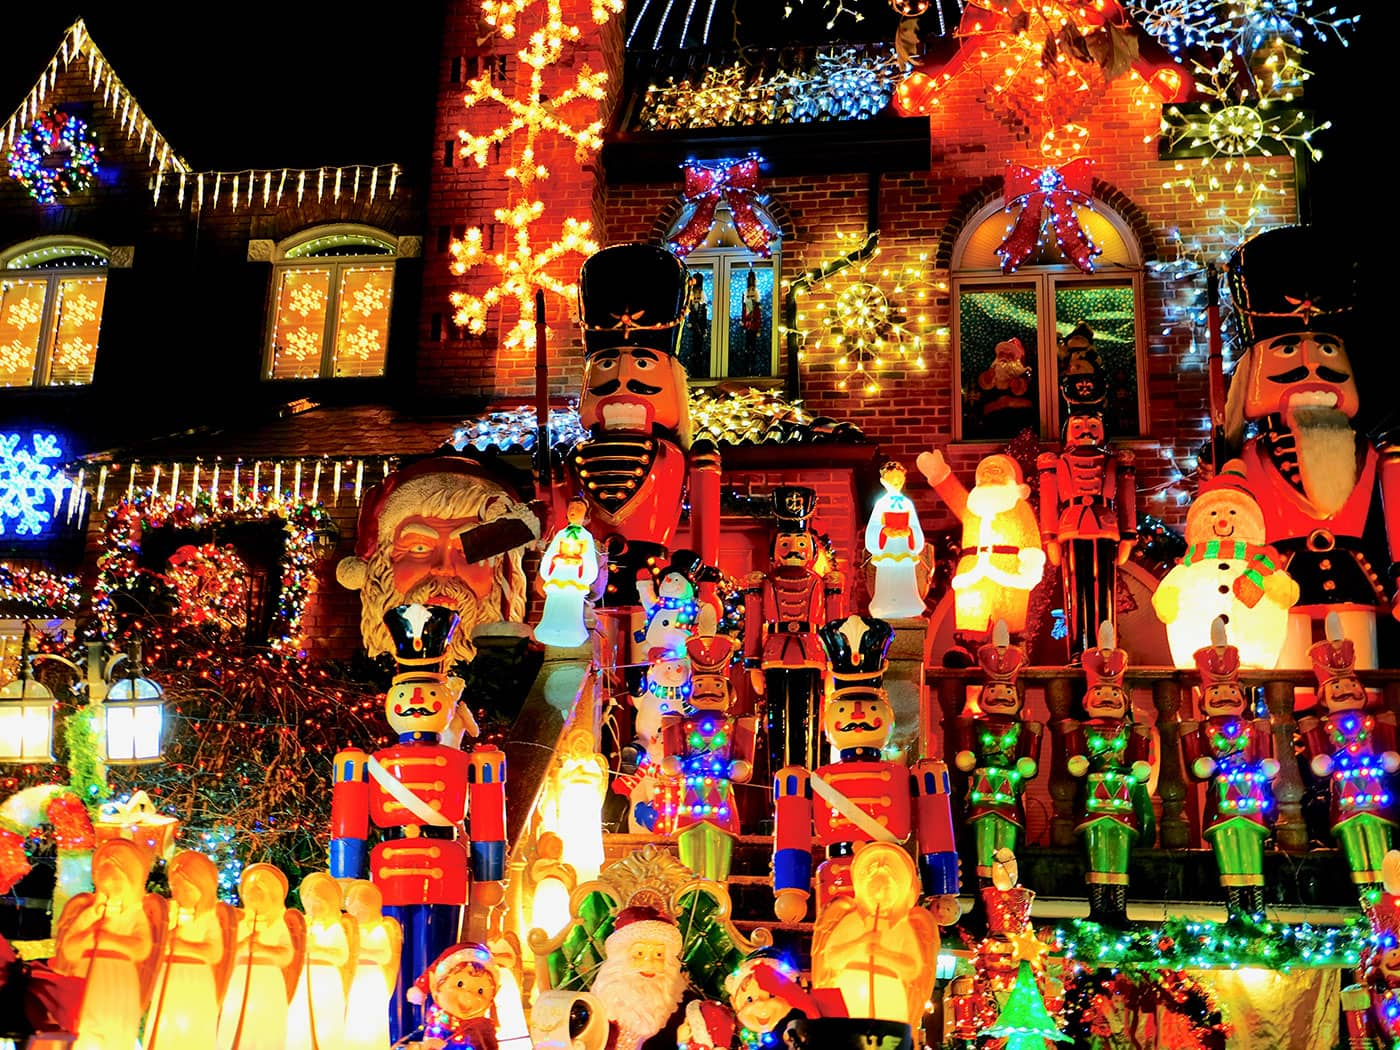 Dyker Heights Christmas Lights - Figures